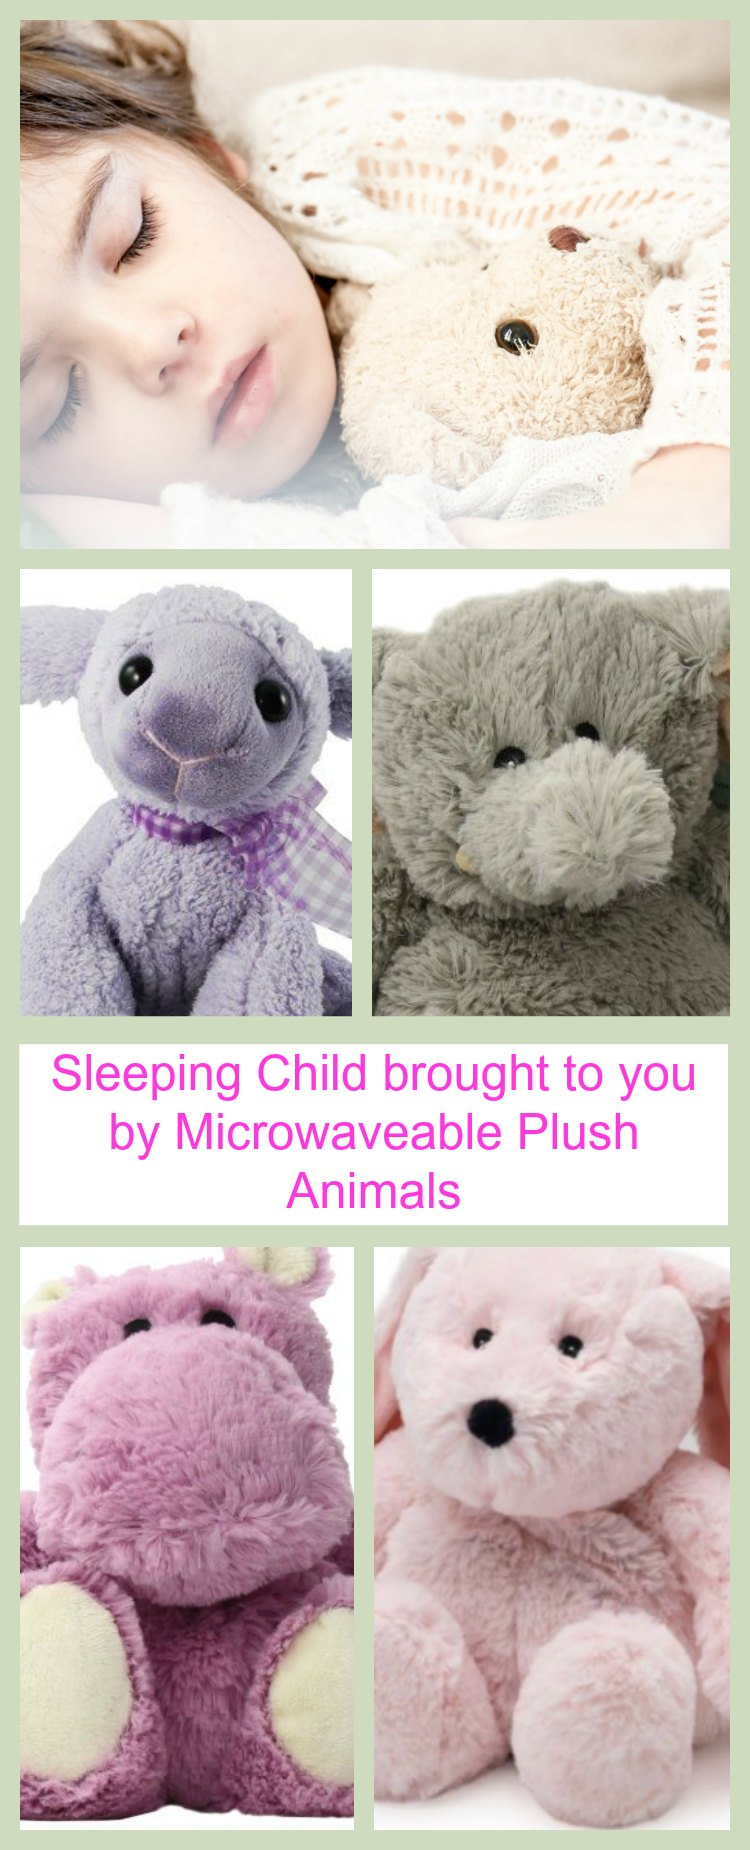 Sleeping Child brought to you buy Microwaveable Plush Animals